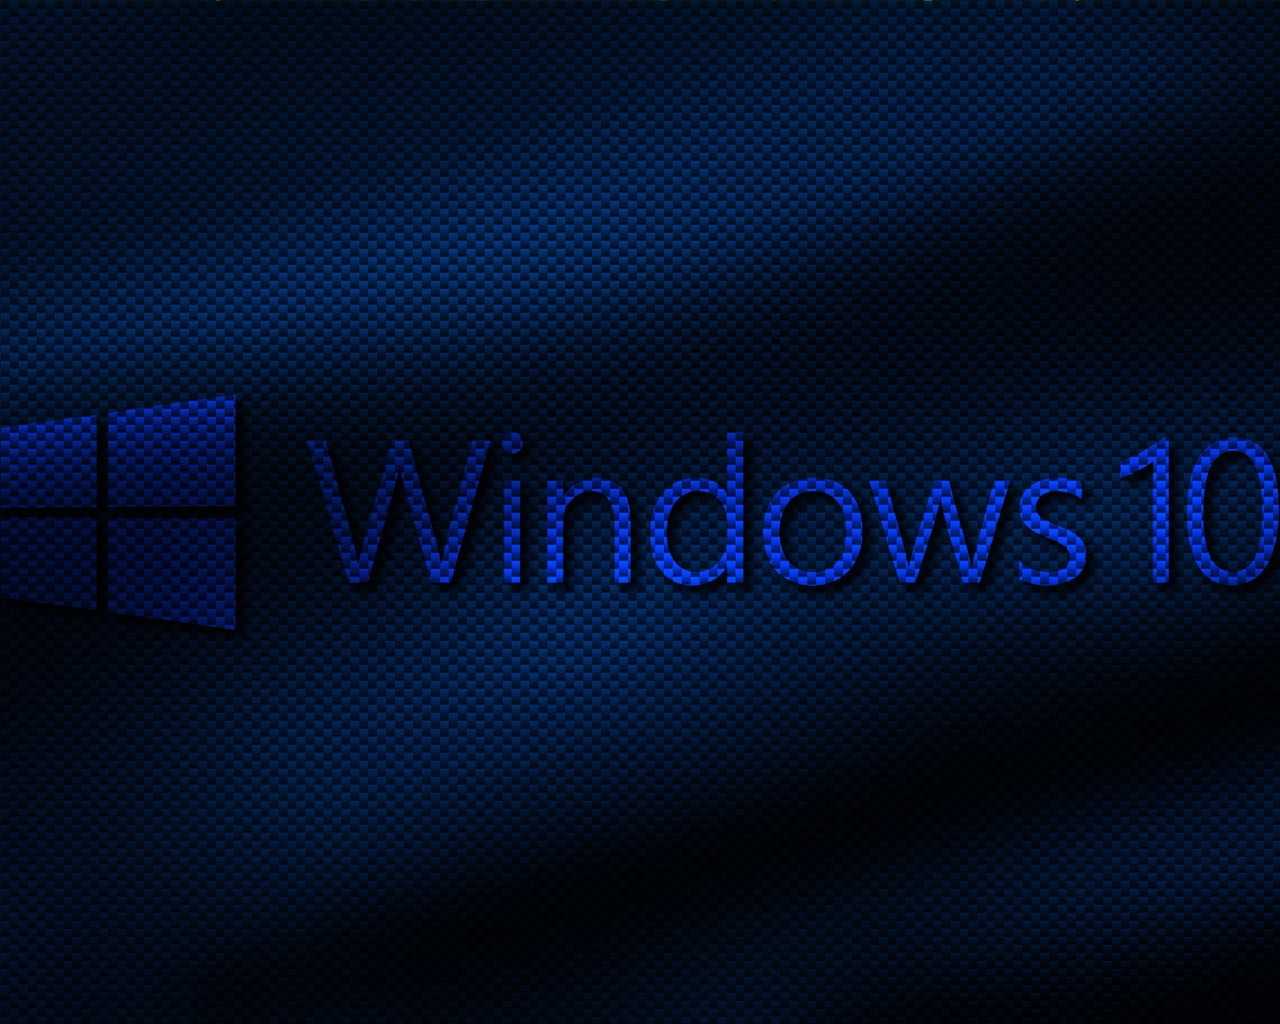 45 Windows 10 Wallpaper 1280x1024 On Wallpapersafari